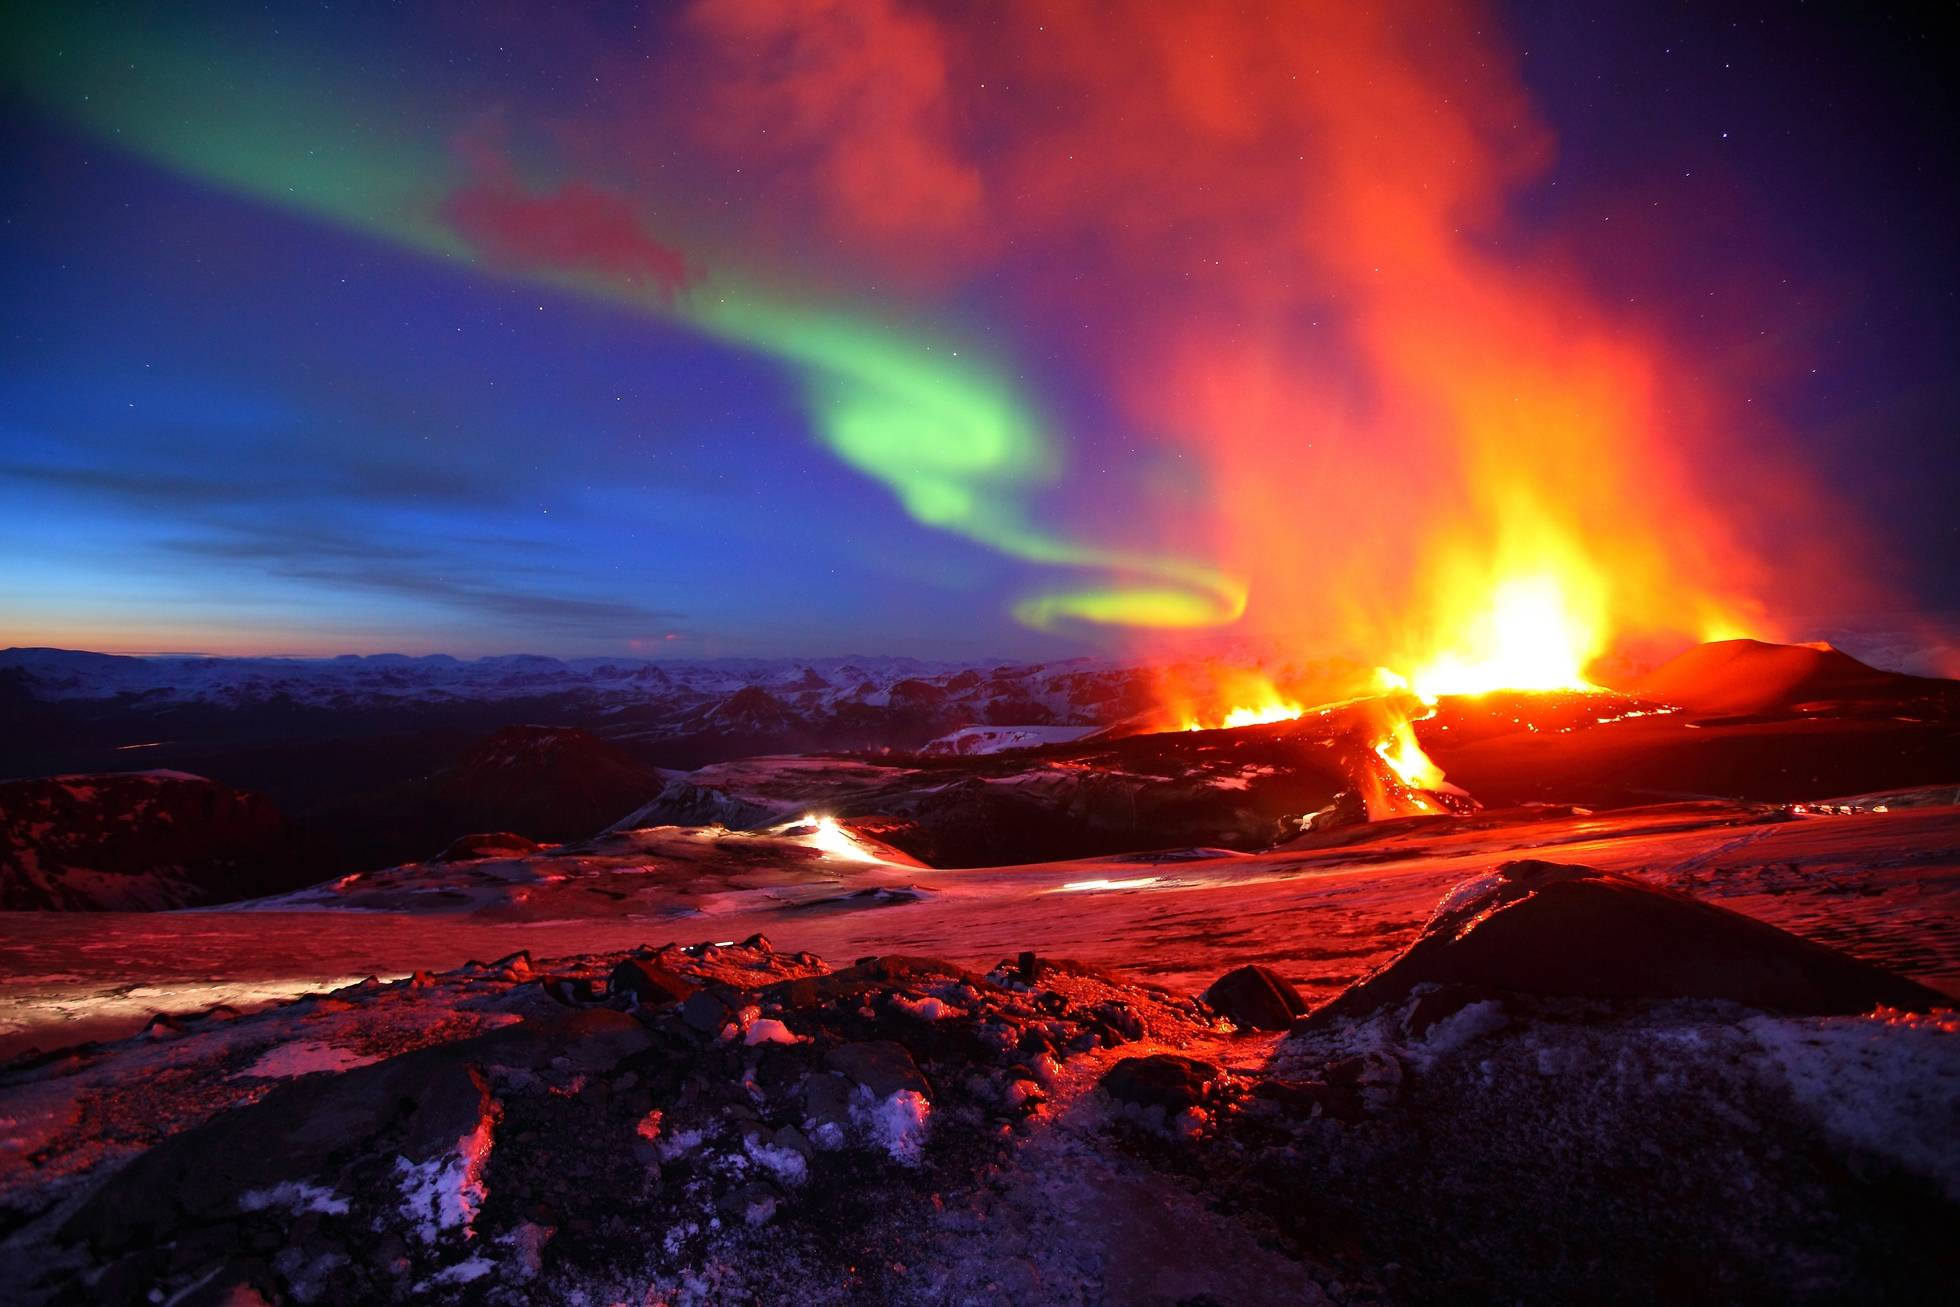 Iceland Northern Lights Volcano HD Wallpaper Background Images 1960x1307